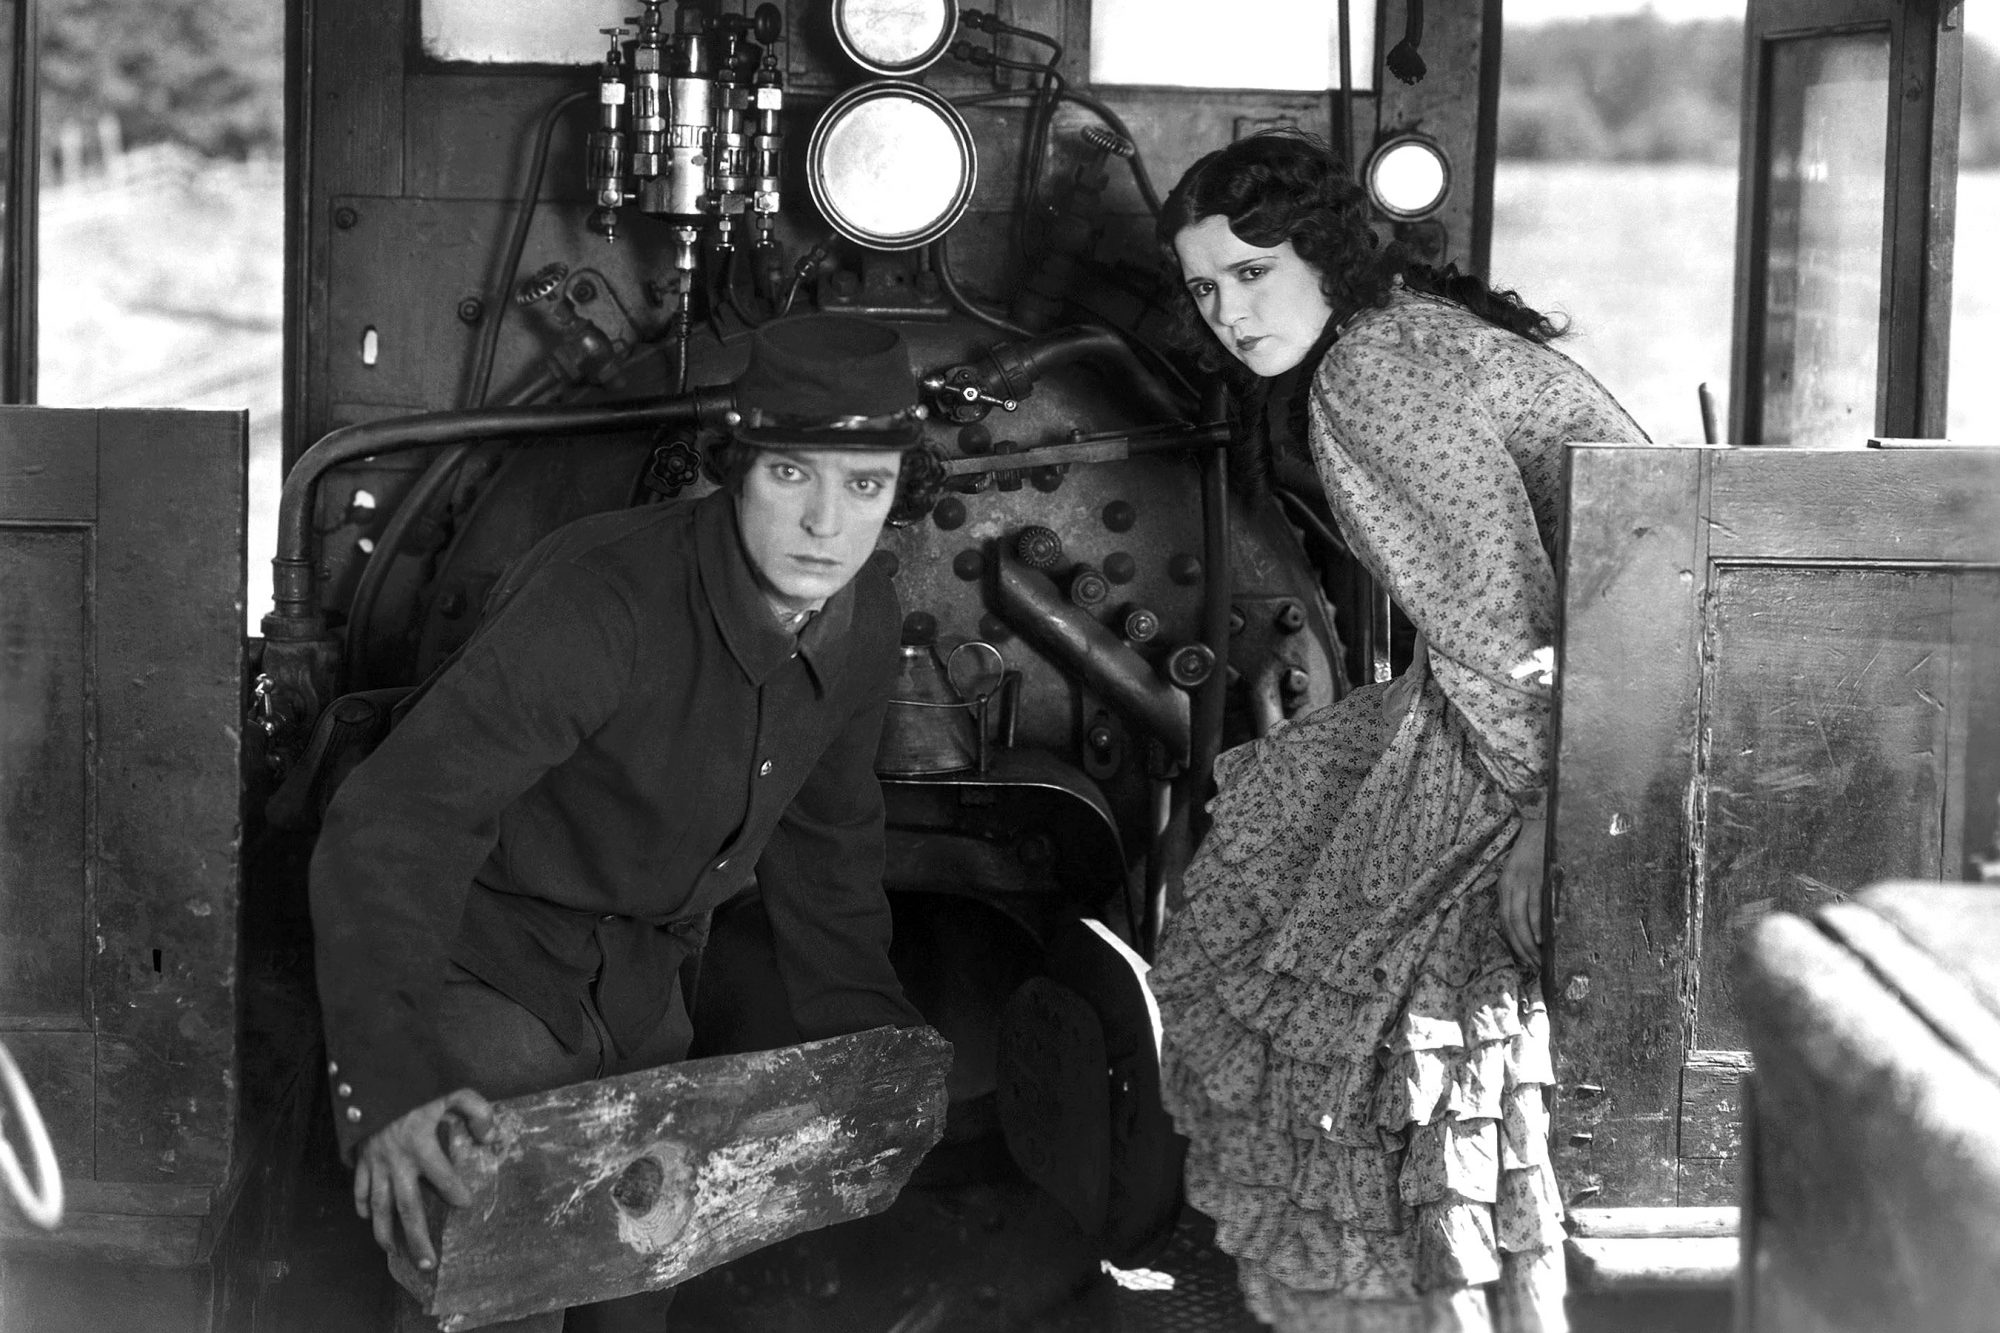 THE GENERAL, from left: Buster Keaton, Marion Mack, 1926, thegeneral1926-fsct02(thegeneral1926-fsct0